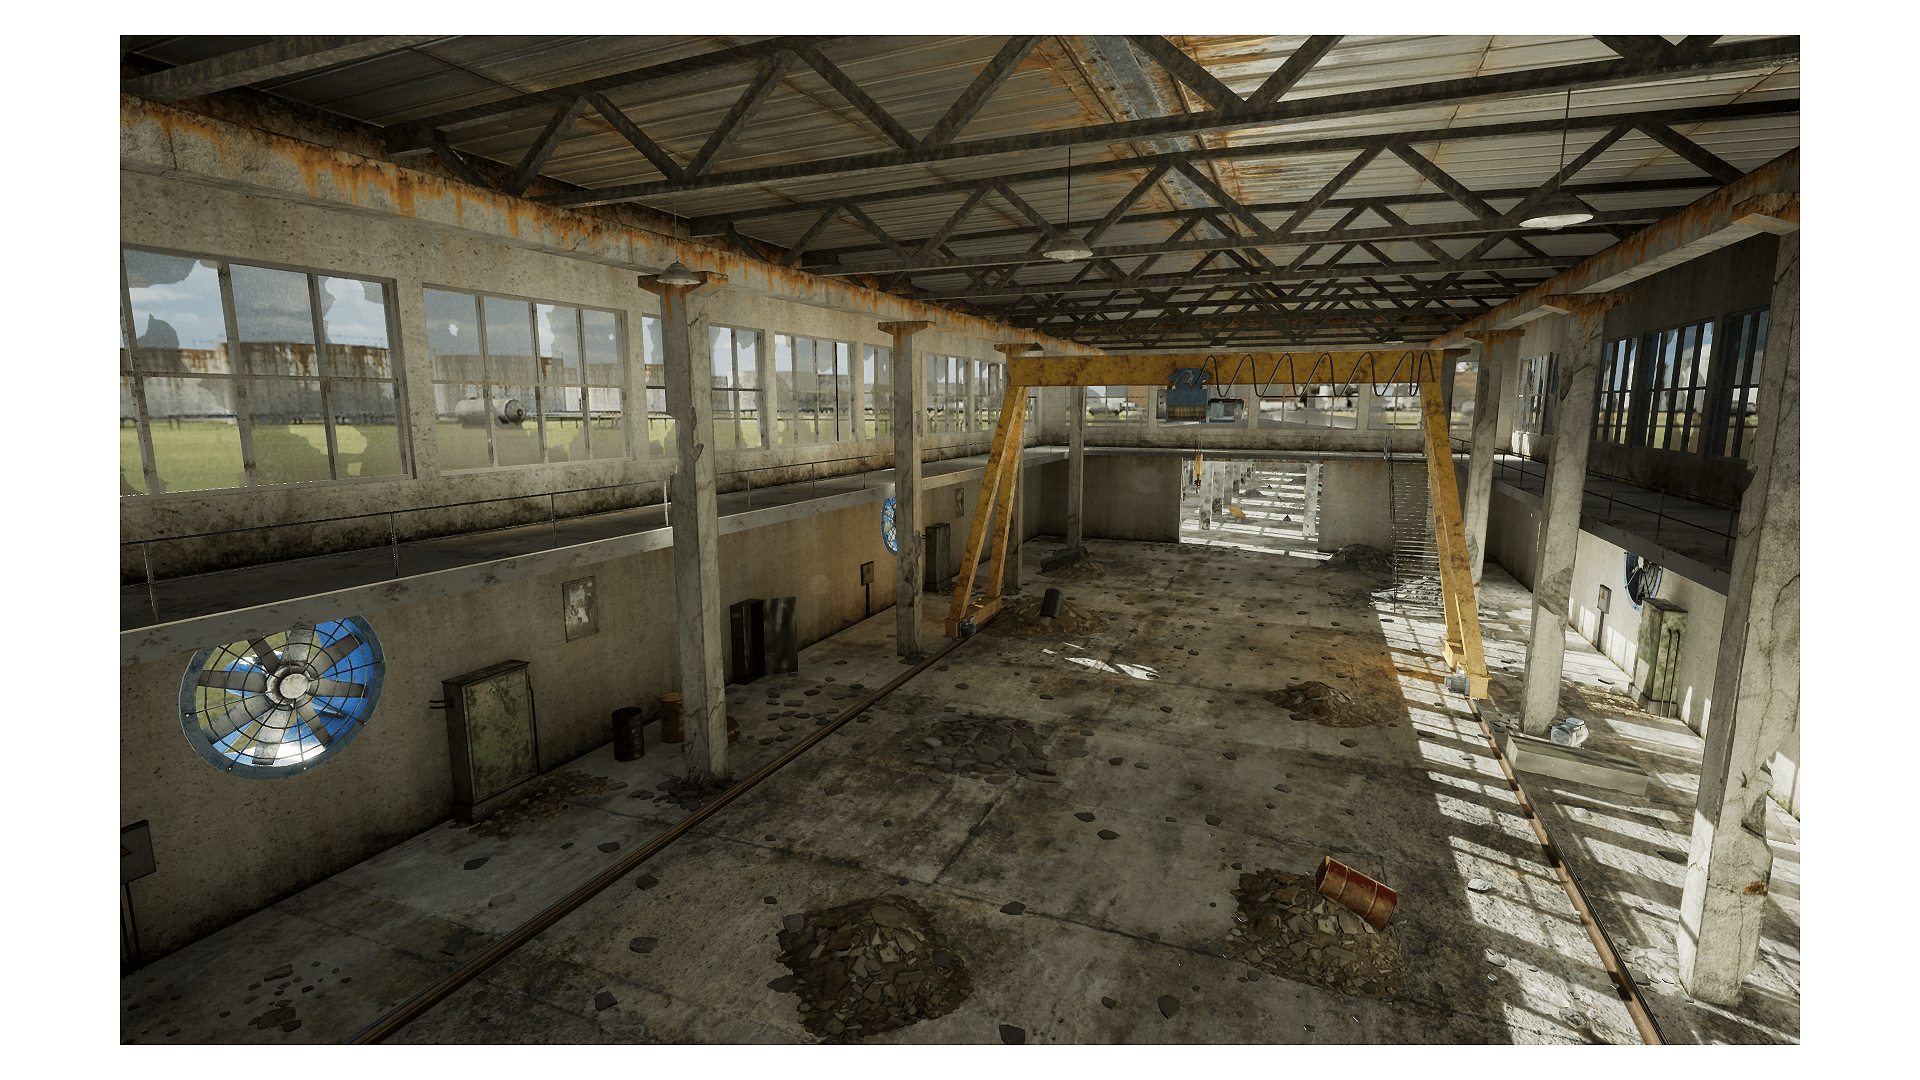 Abandoned Factory by Tirgames Assets in Environments - UE4 Marketplace